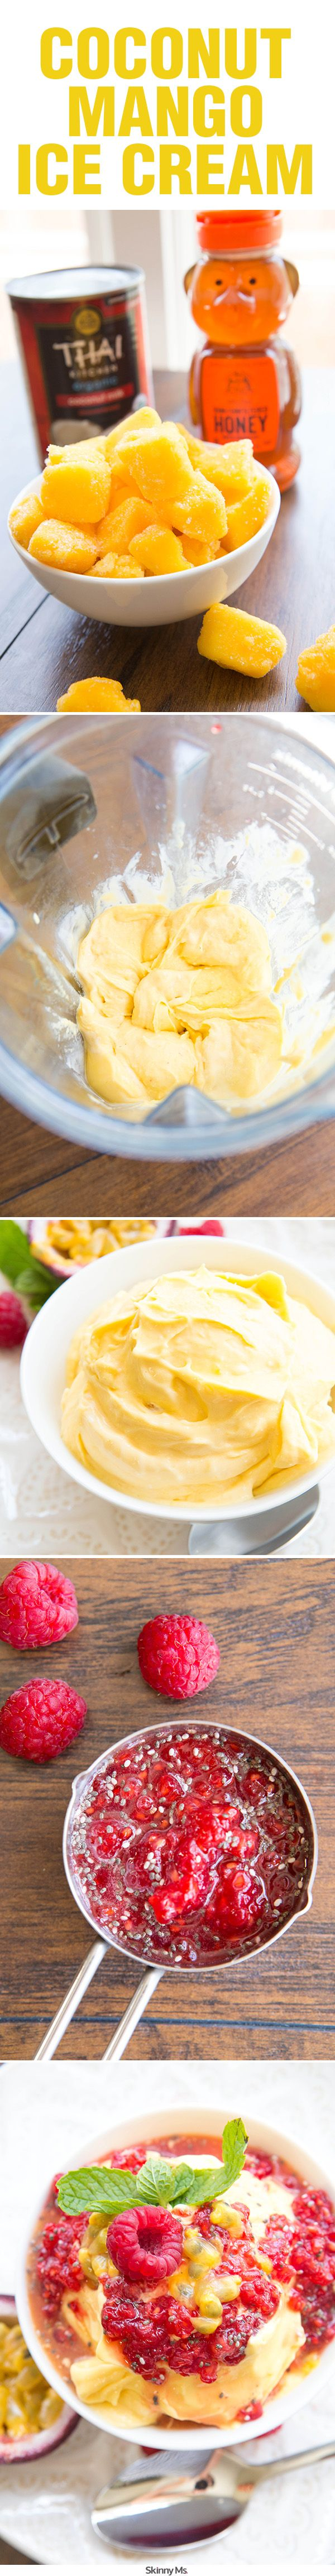 Make your own creamy, soft-serve style ice cream using just three ingredients: coconut milk, frozen fruit, and honey. #mangoicecream #healthyicecream #cleaneatingrecipes